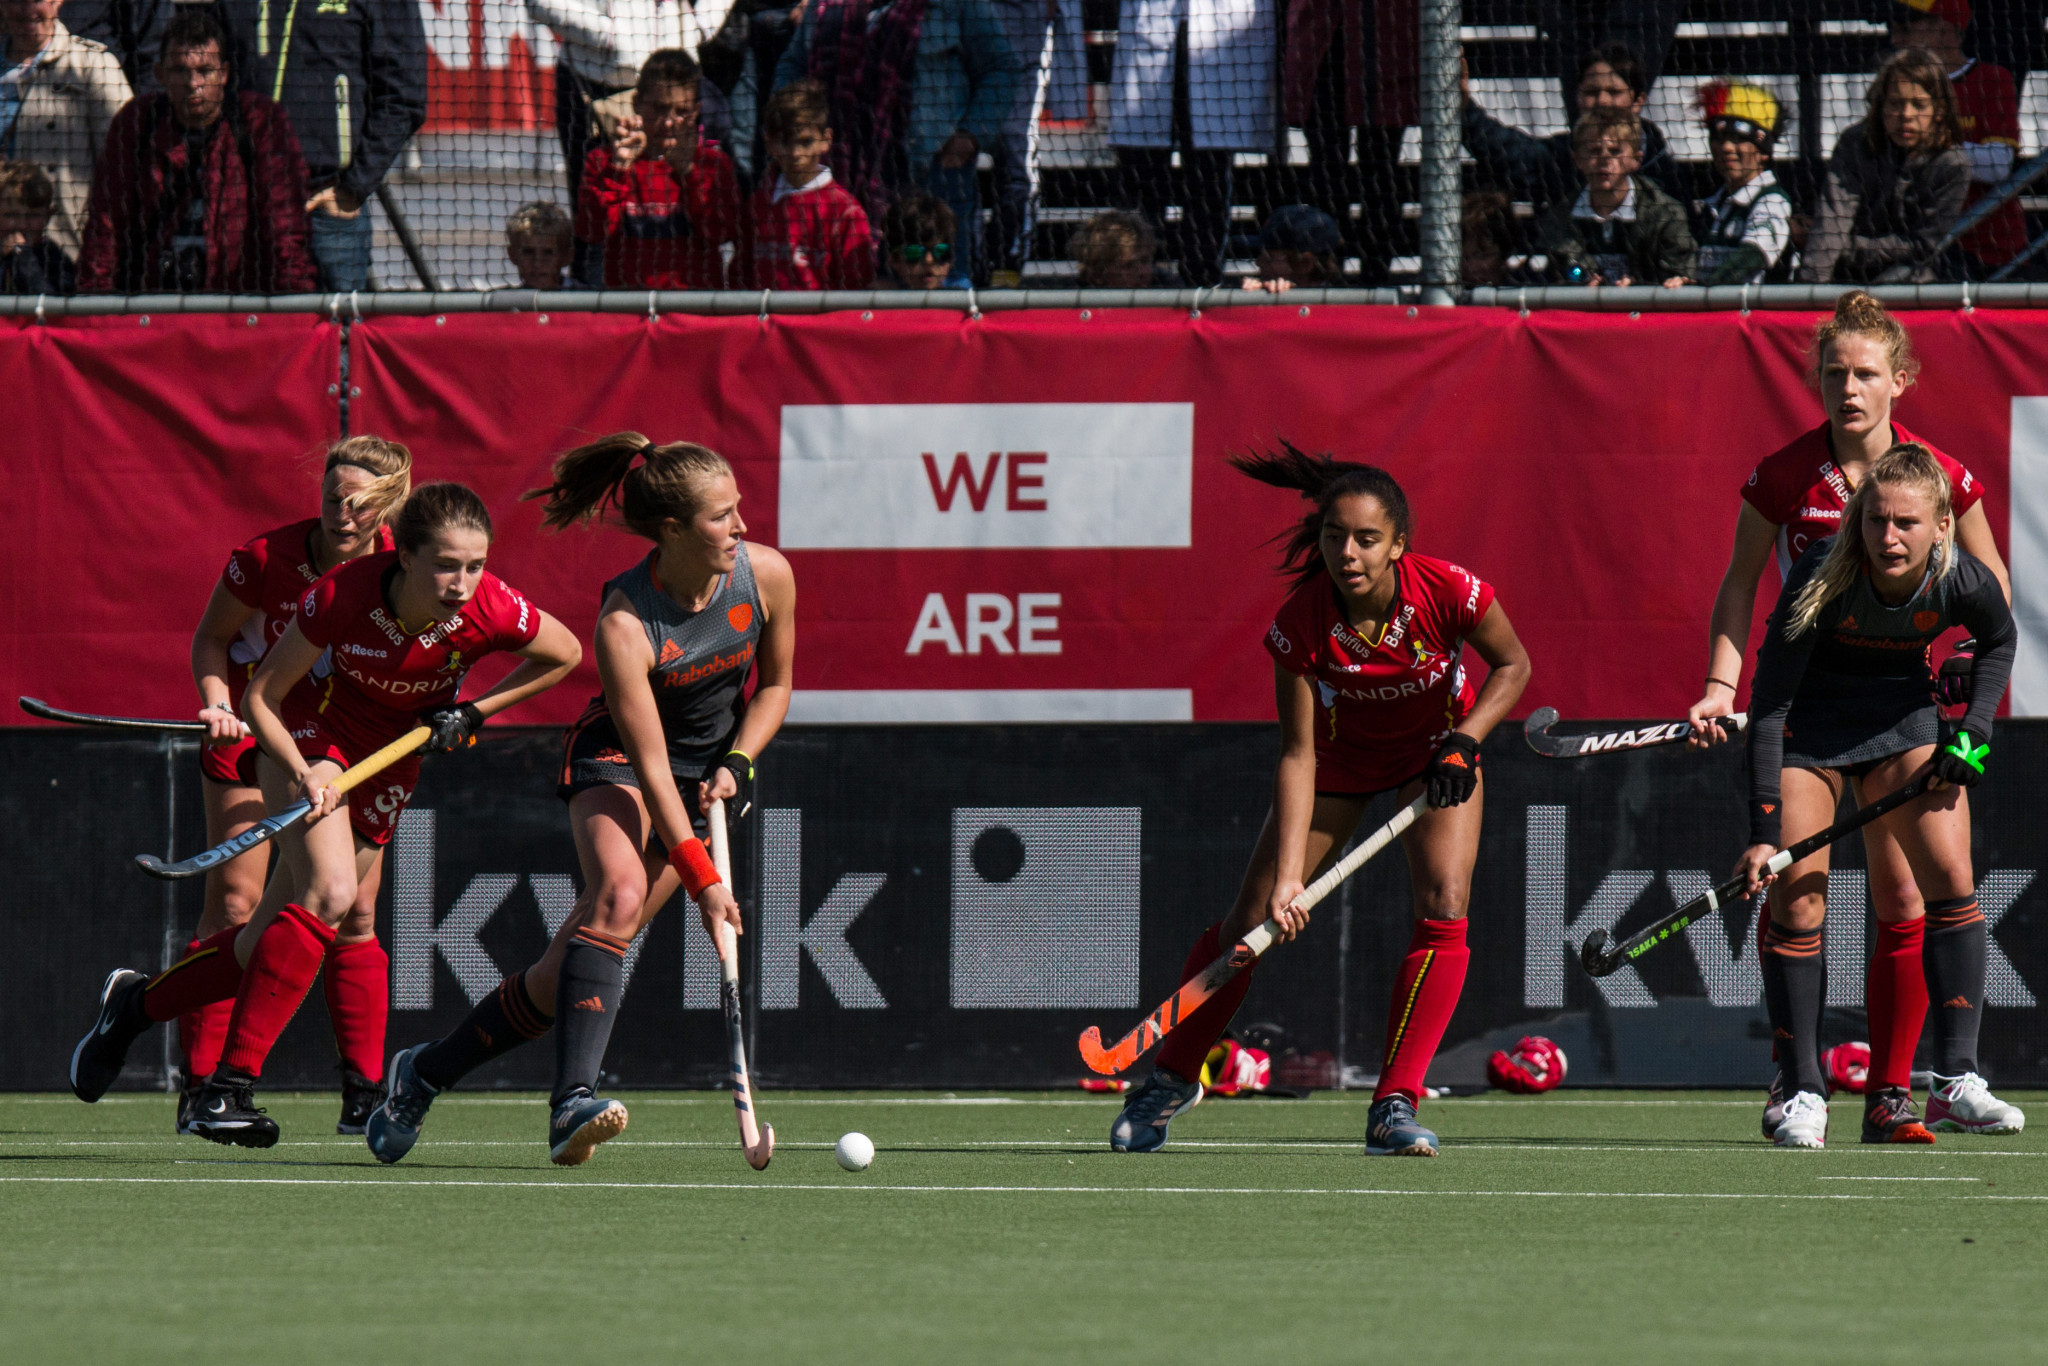 Netherlands secure spot in women's FIH Pro League Grand Final with victory over Belgium